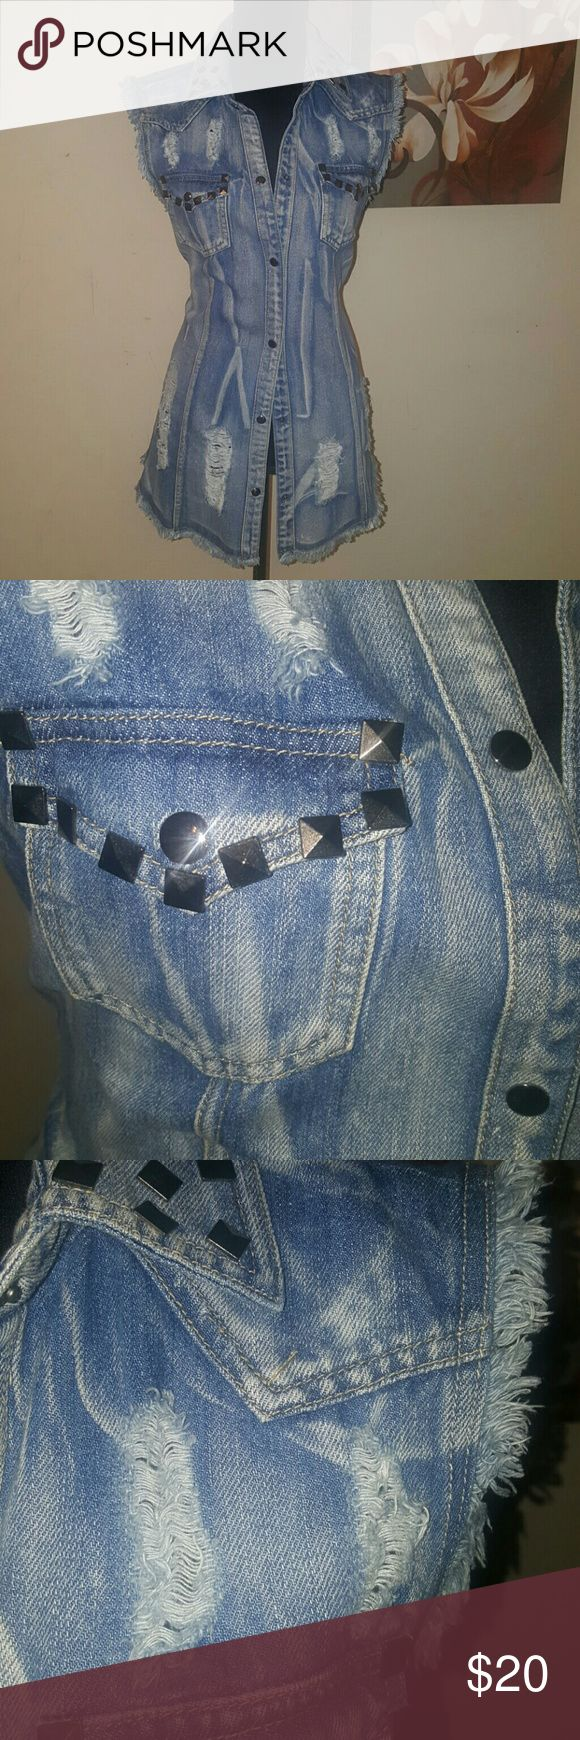 Jean Top Distressed and embellished with studs...great alone or with leggings!!  A MUST HAVE! Tops